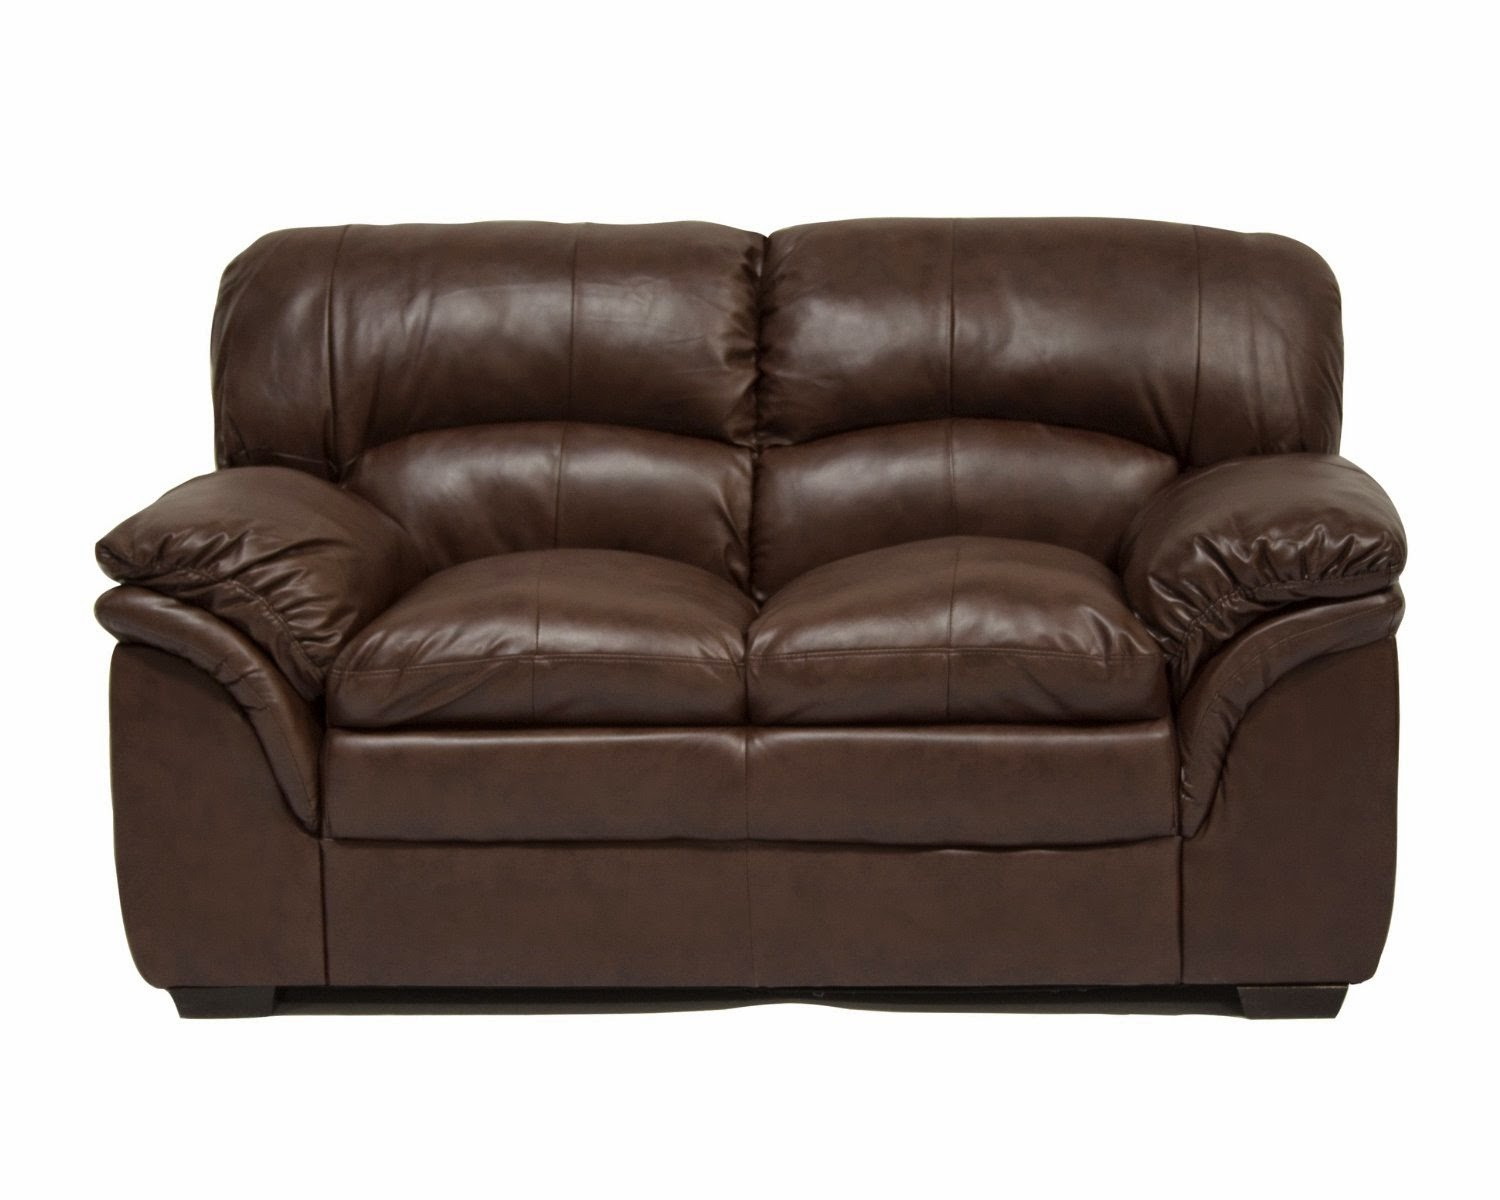 Leather recliner sofas sale cheap reclining sofas sale 2 for Sofa couch for sale